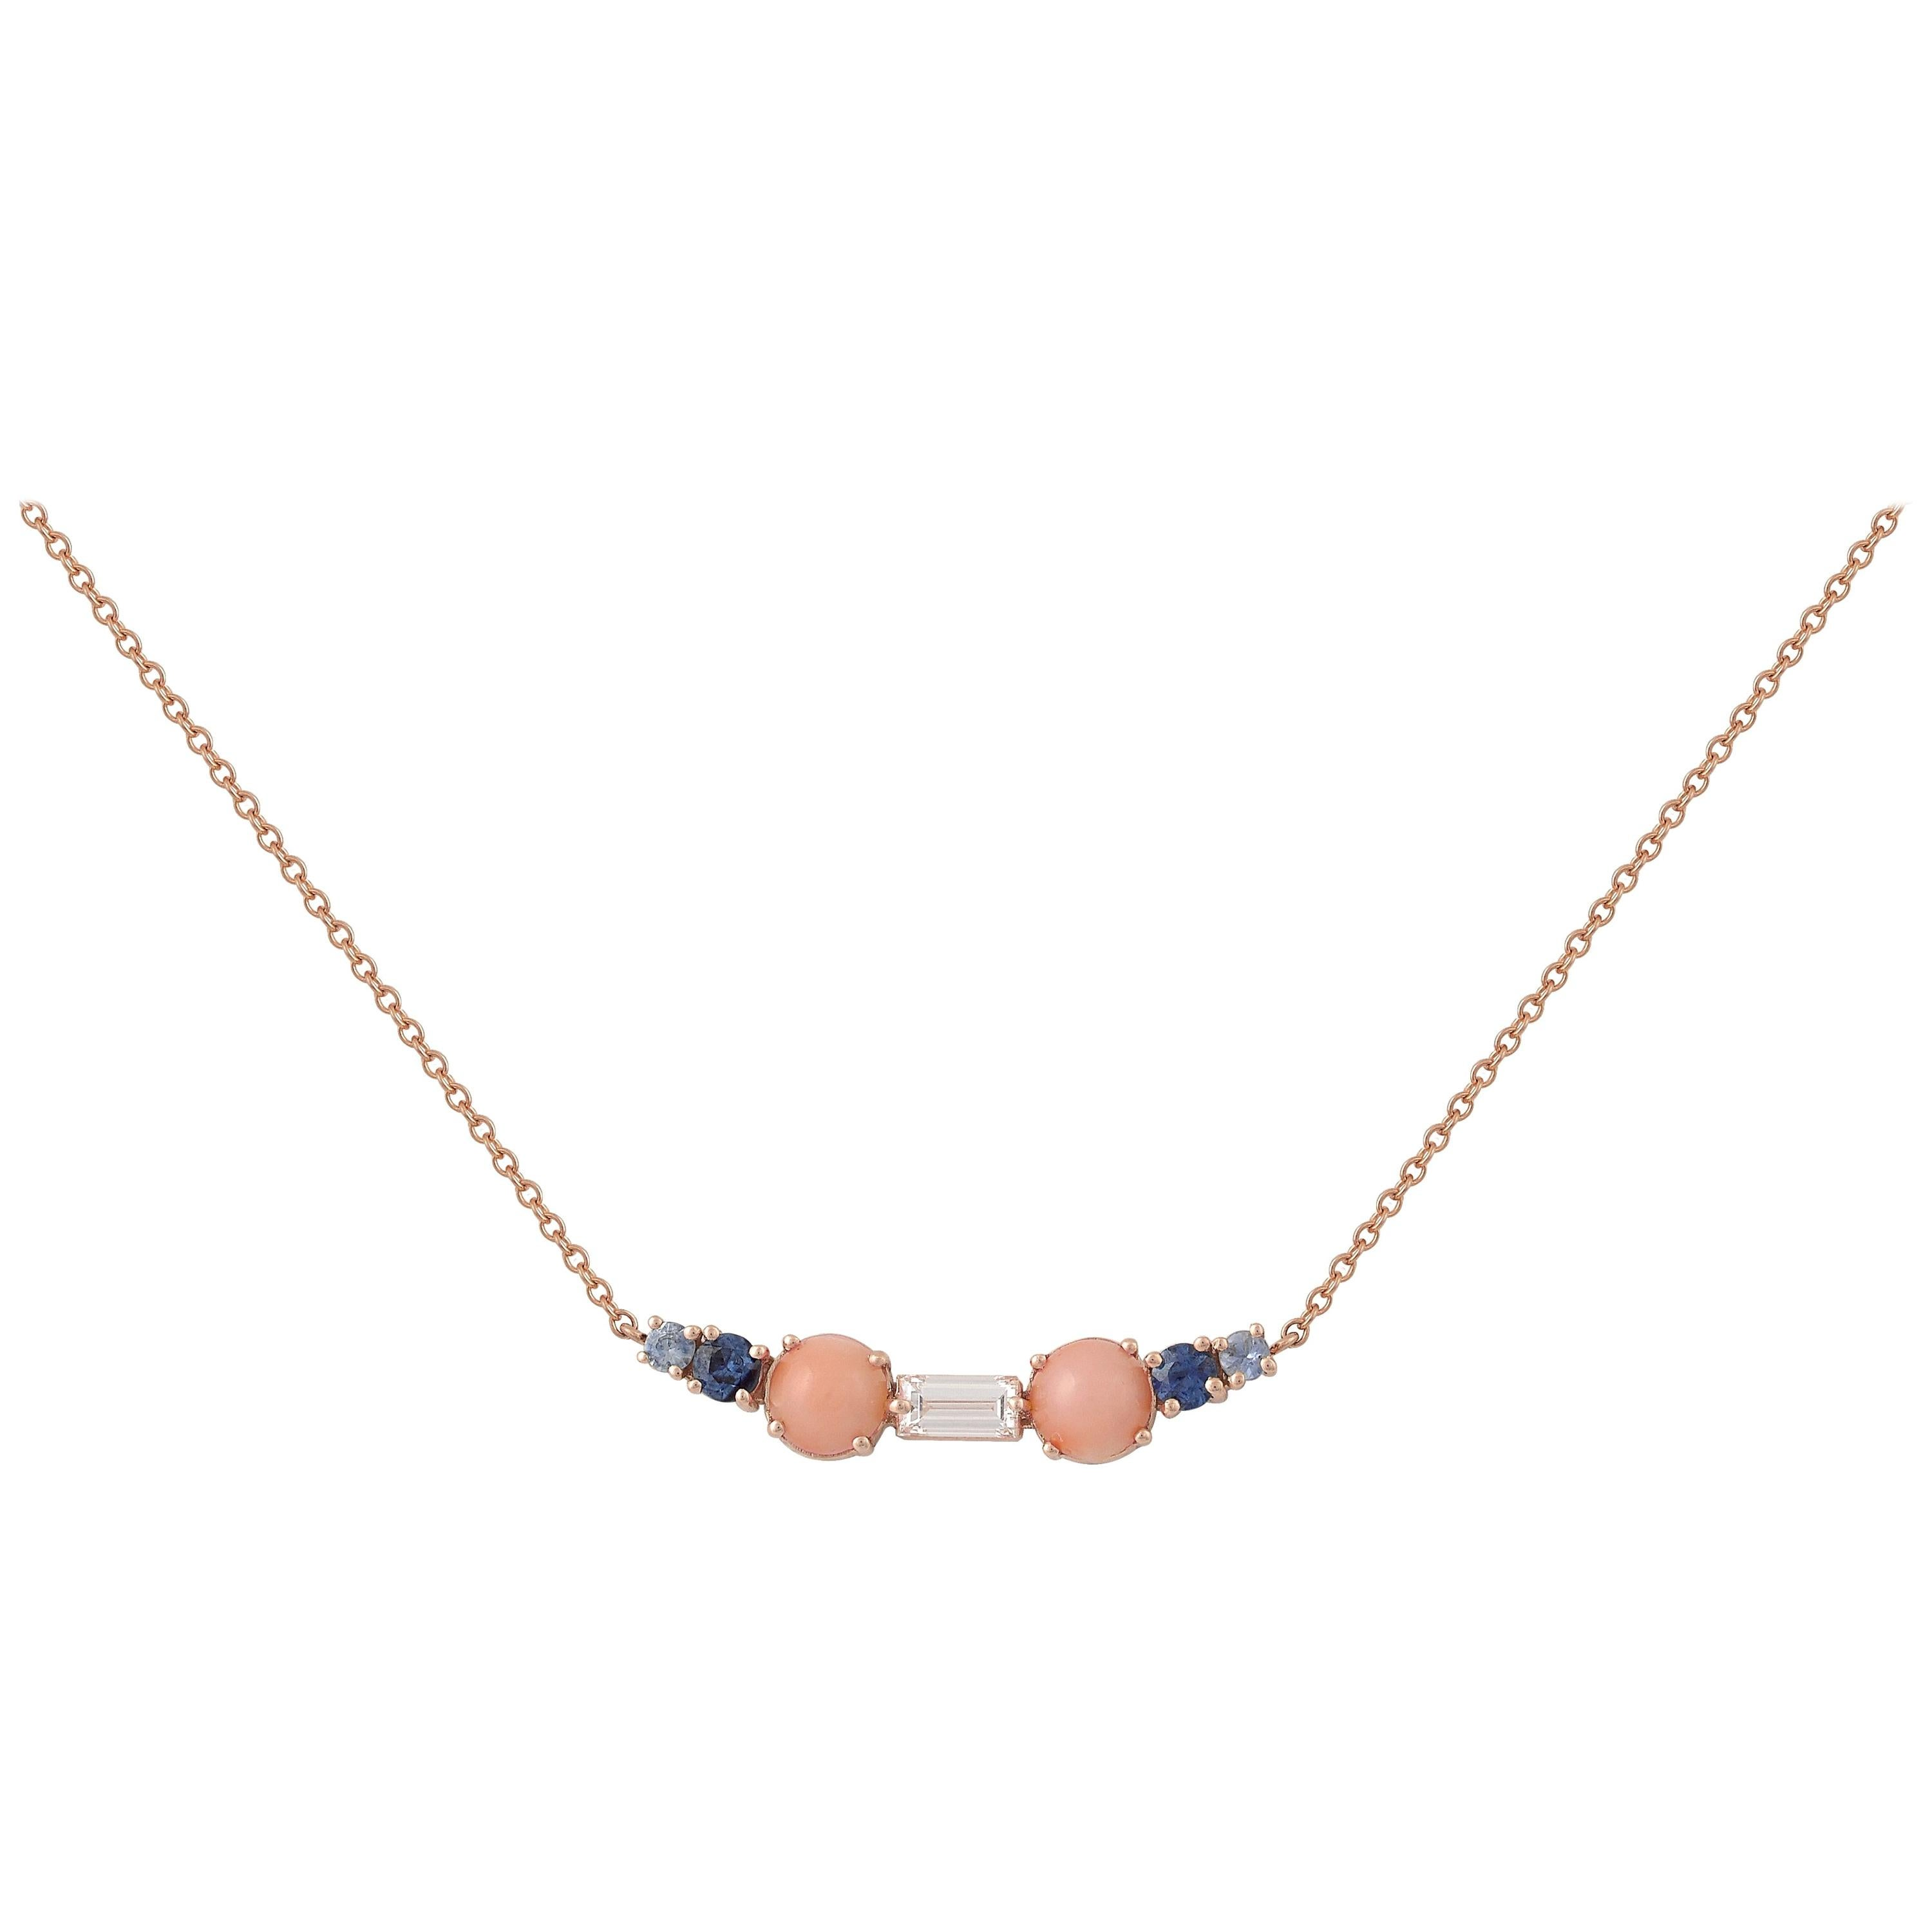 Colorful Multi-Stone 18 Karat Gold Necklace with a Diamond, Sapphires and Corals